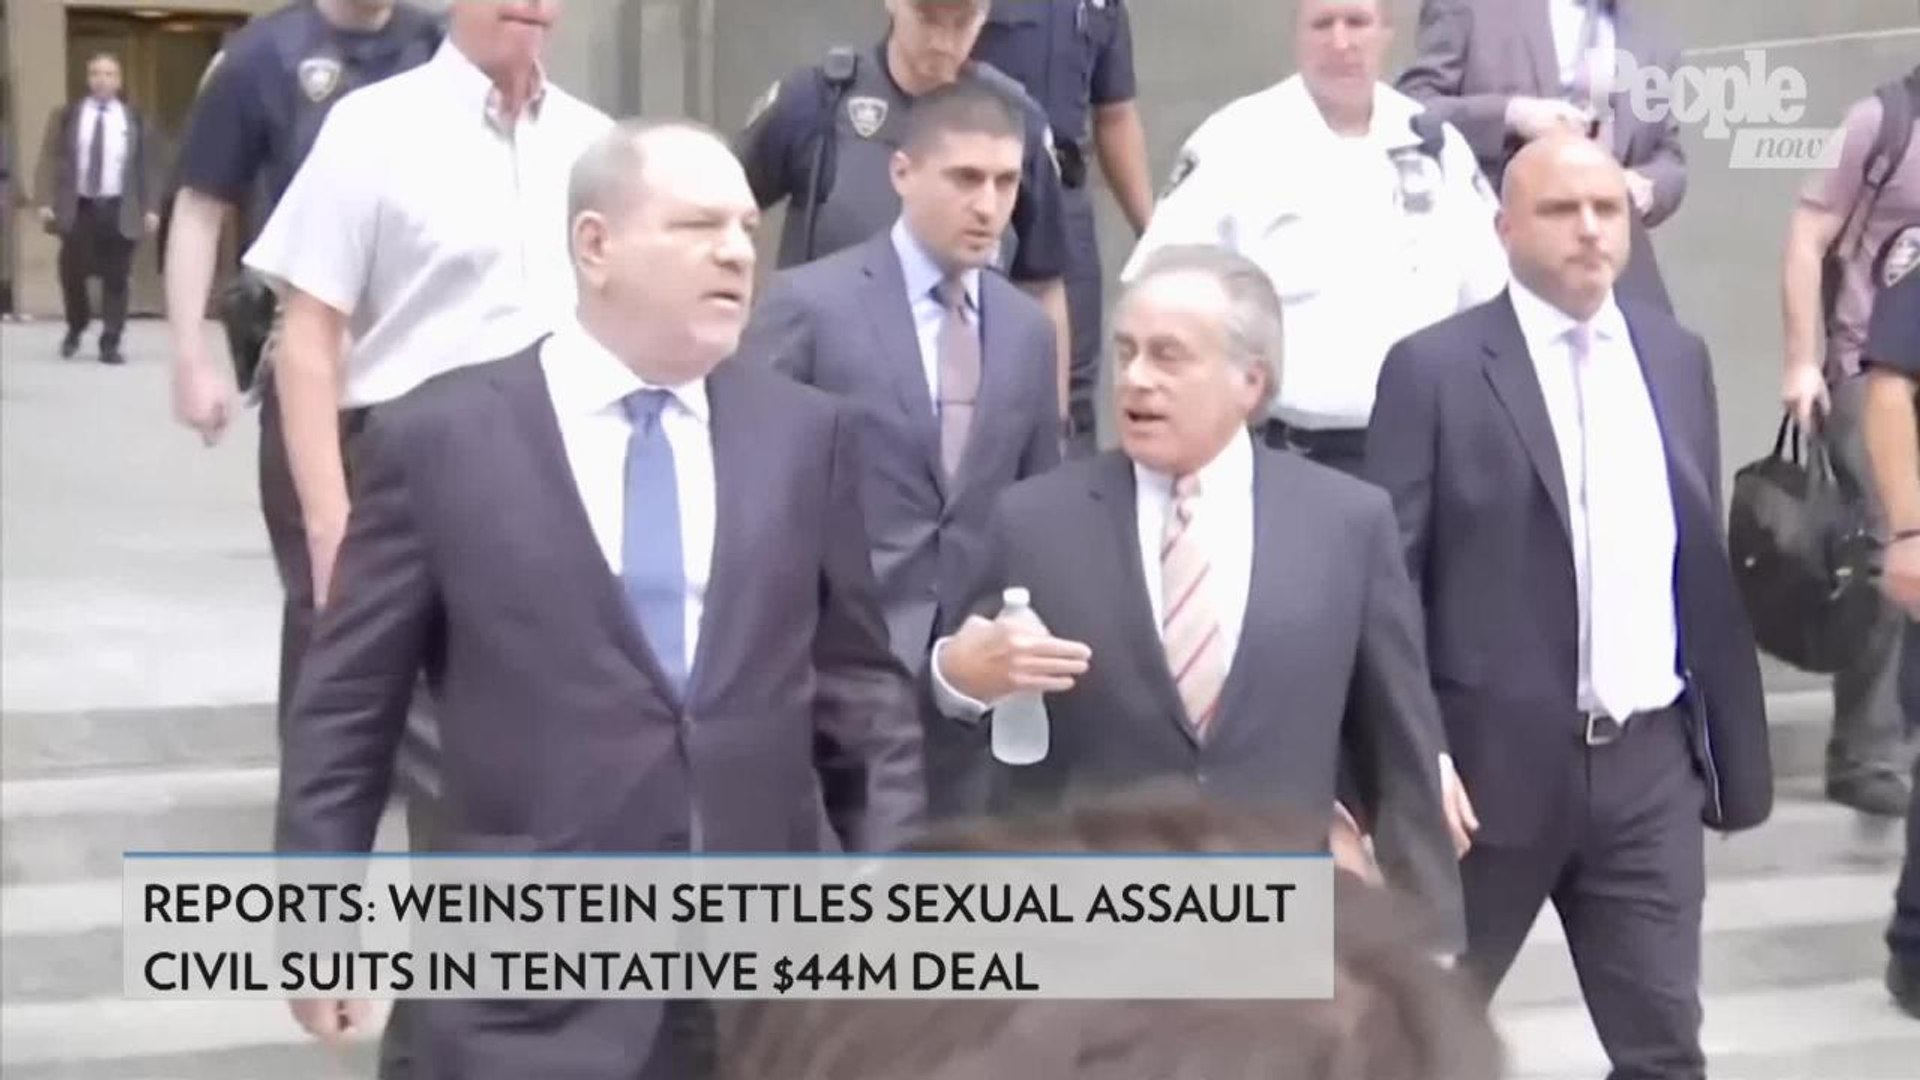 Harvey Weinstein Settles Sexual Assault Civil Suits in Tentative $44M Deal: Reports